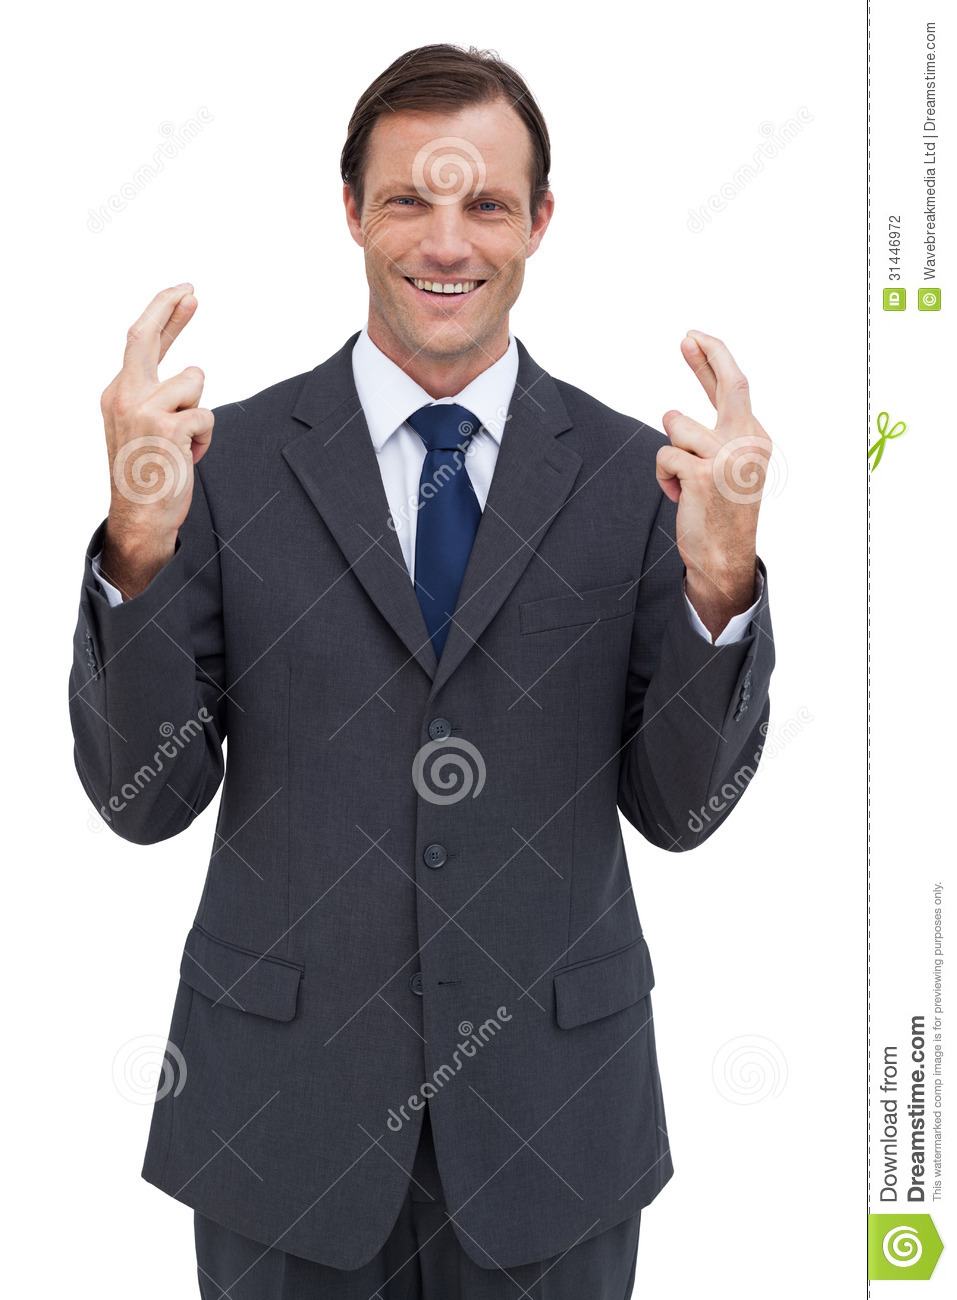 Serious businessman with fingers crossed